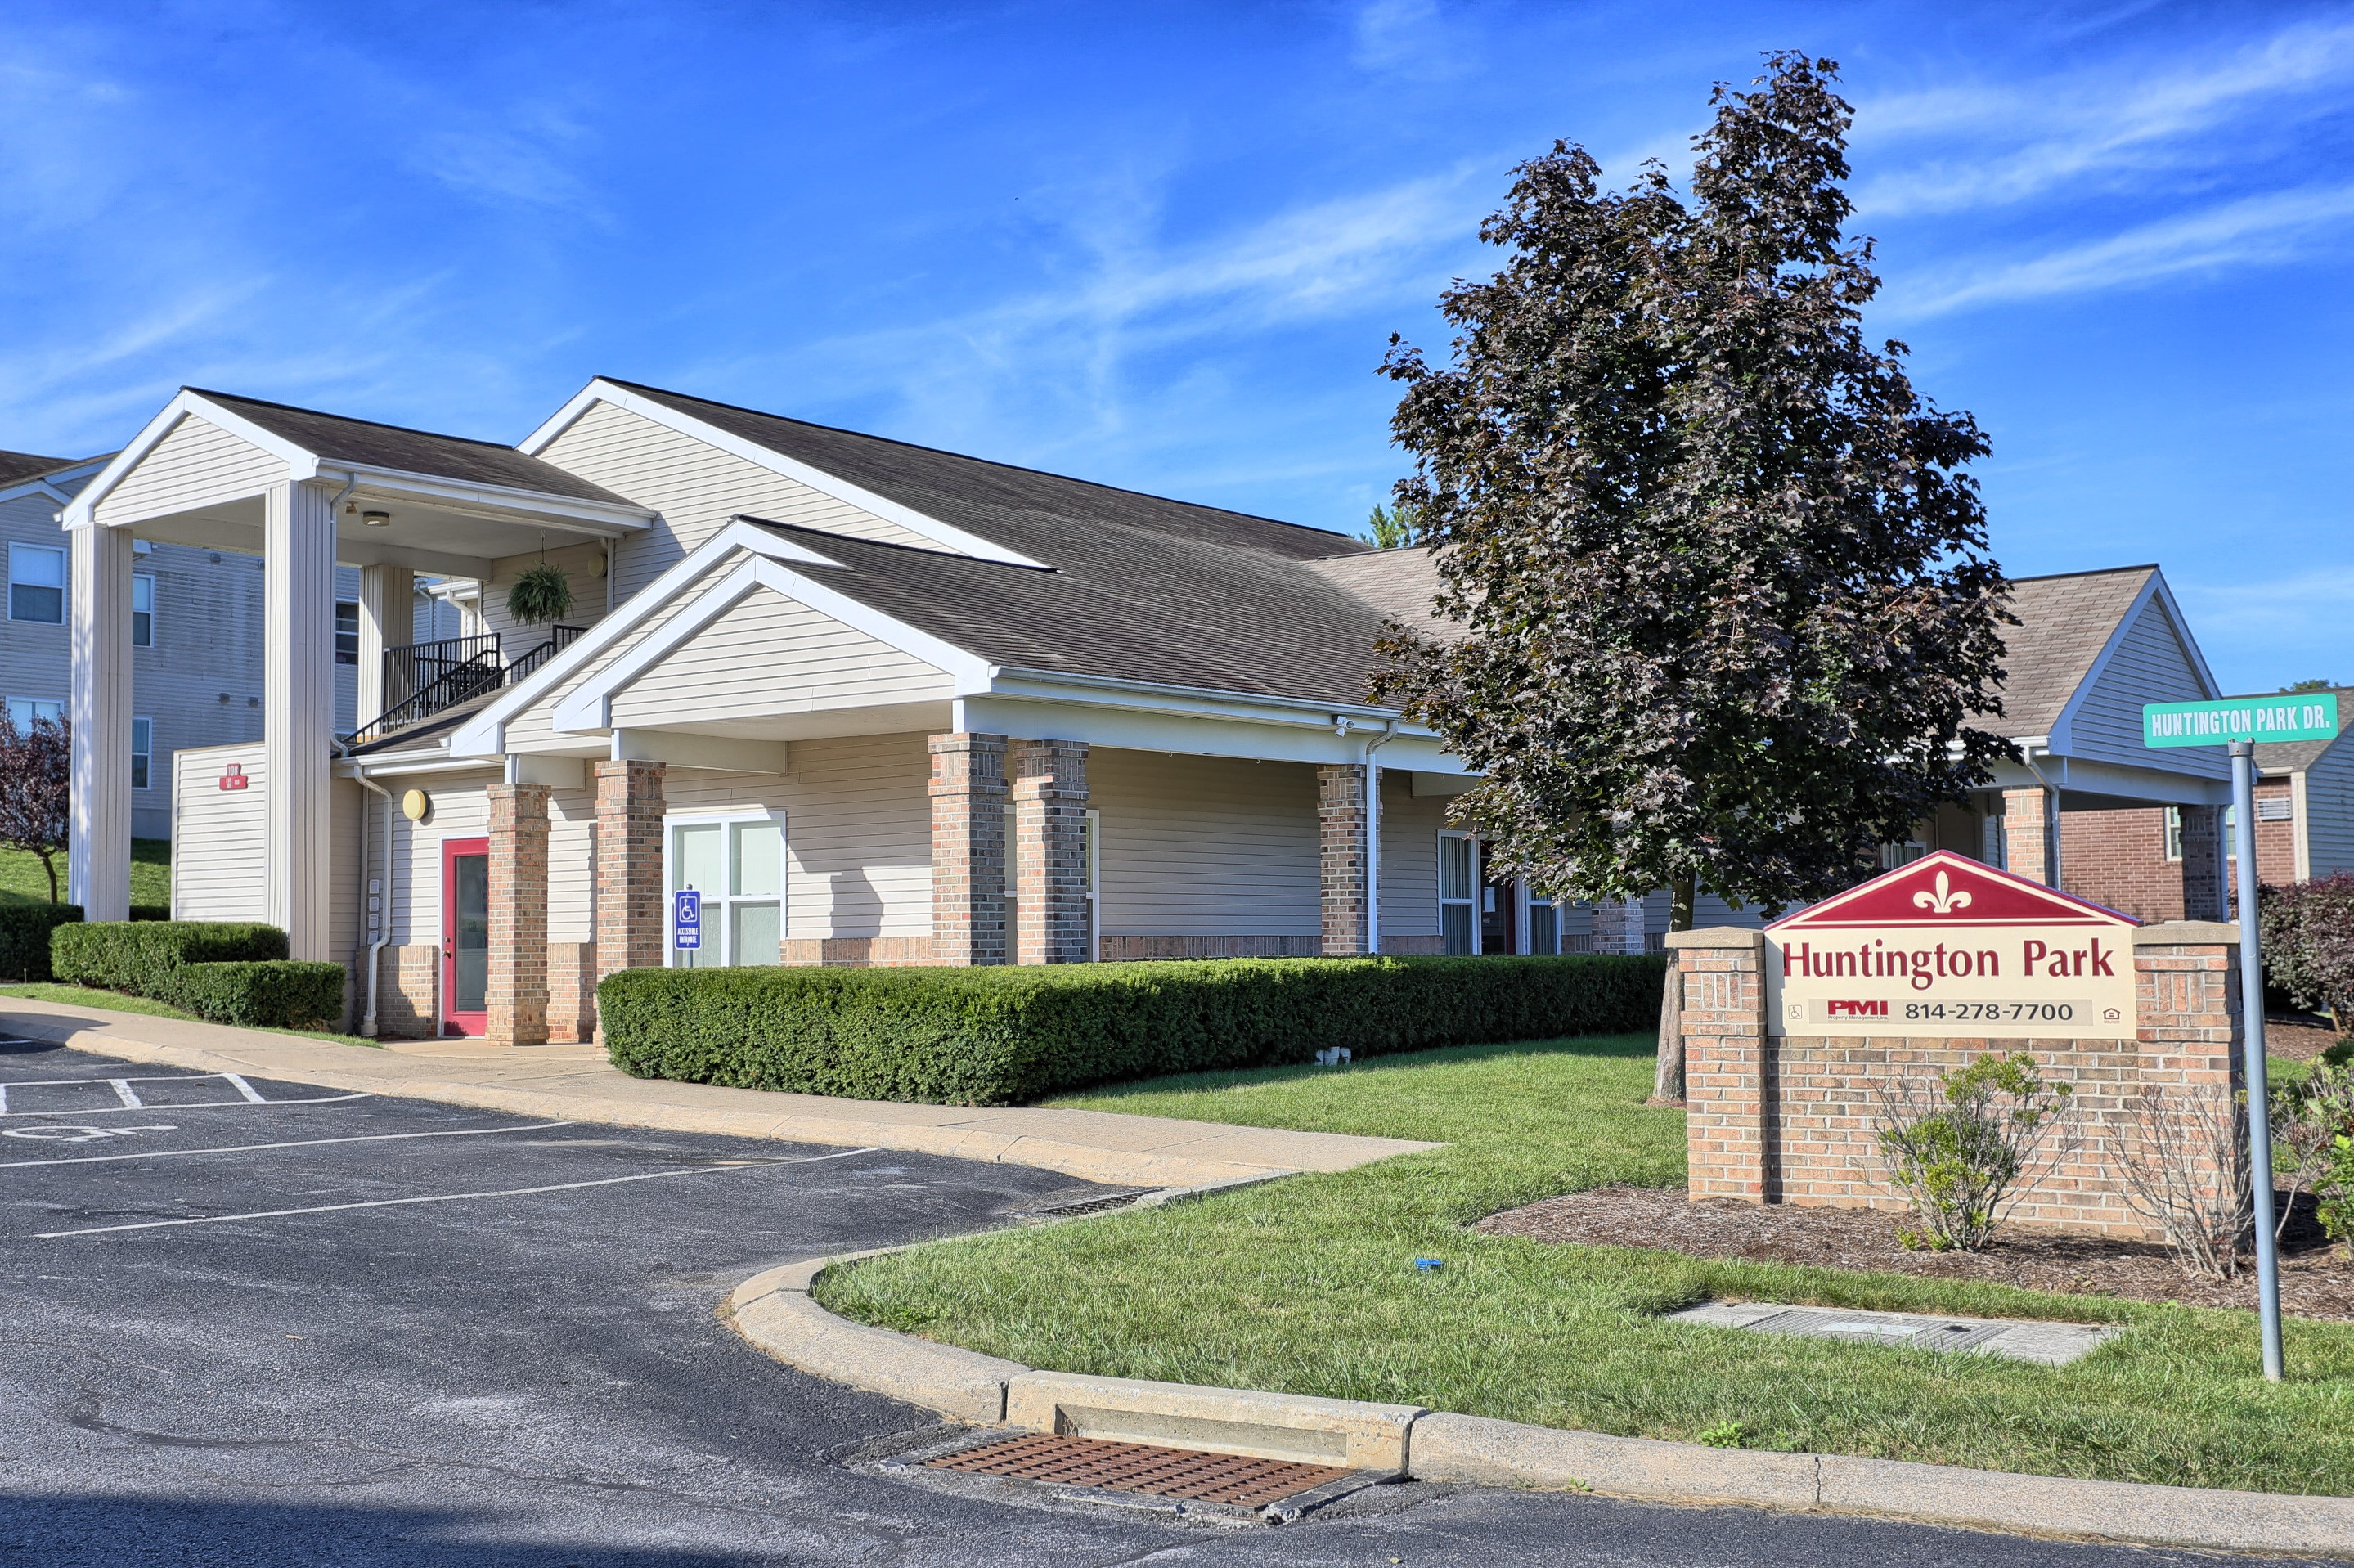 Penn State Apartments In Boalsburg, PA | Huntington Park Apartments |  Property Management, Inc